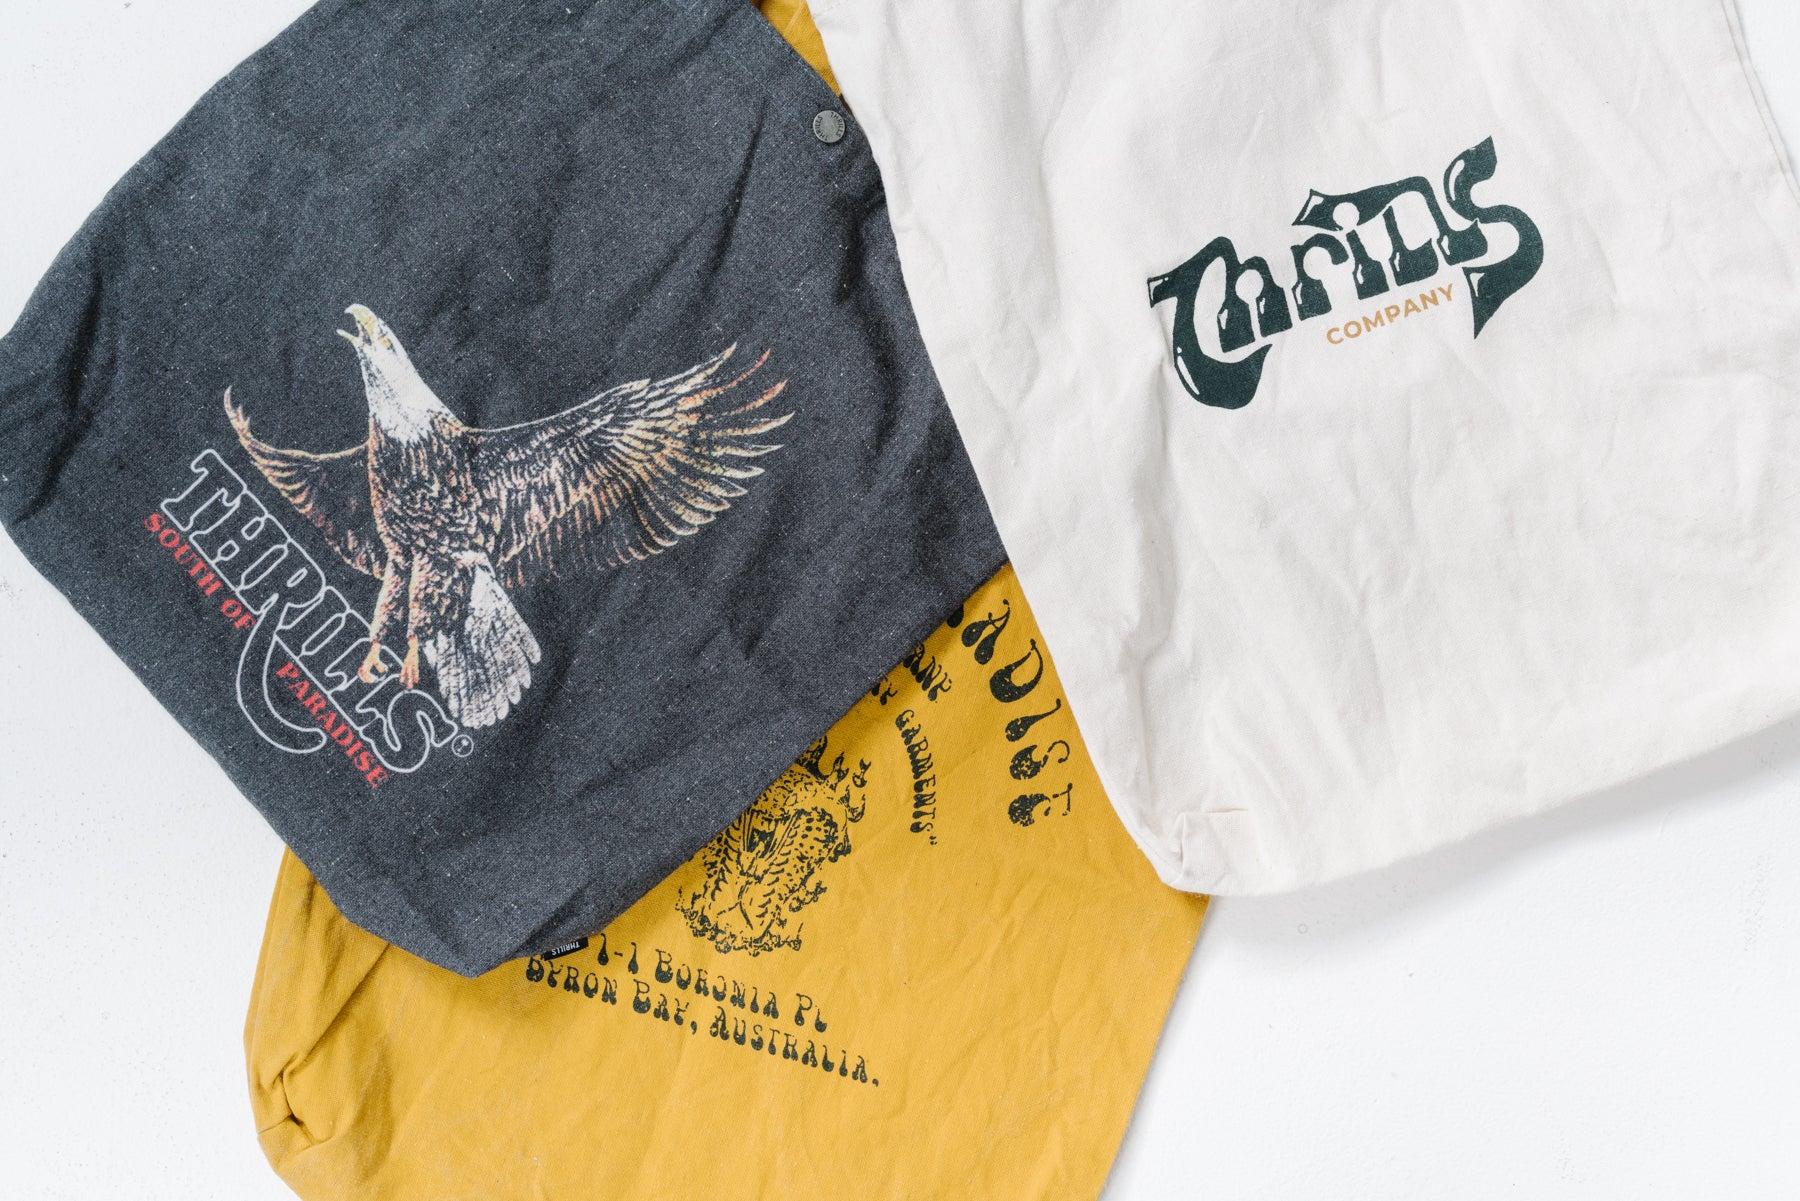 Thrills Recycled Cotton Tote Bags